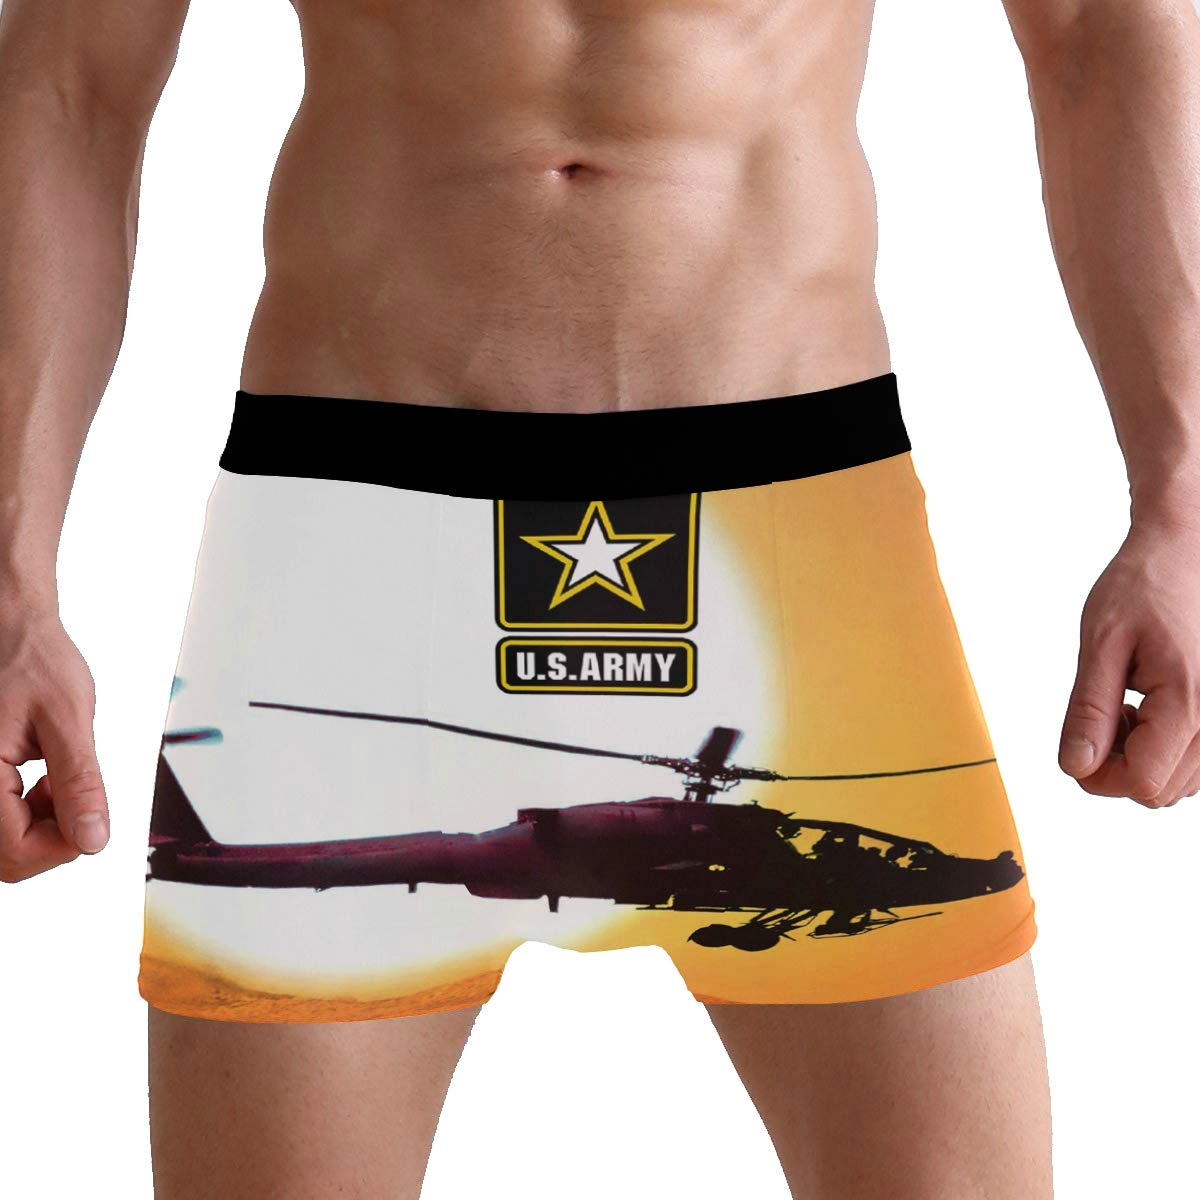 S-XL Abbylife US Army American Military Mens Underwear Boxer Briefs